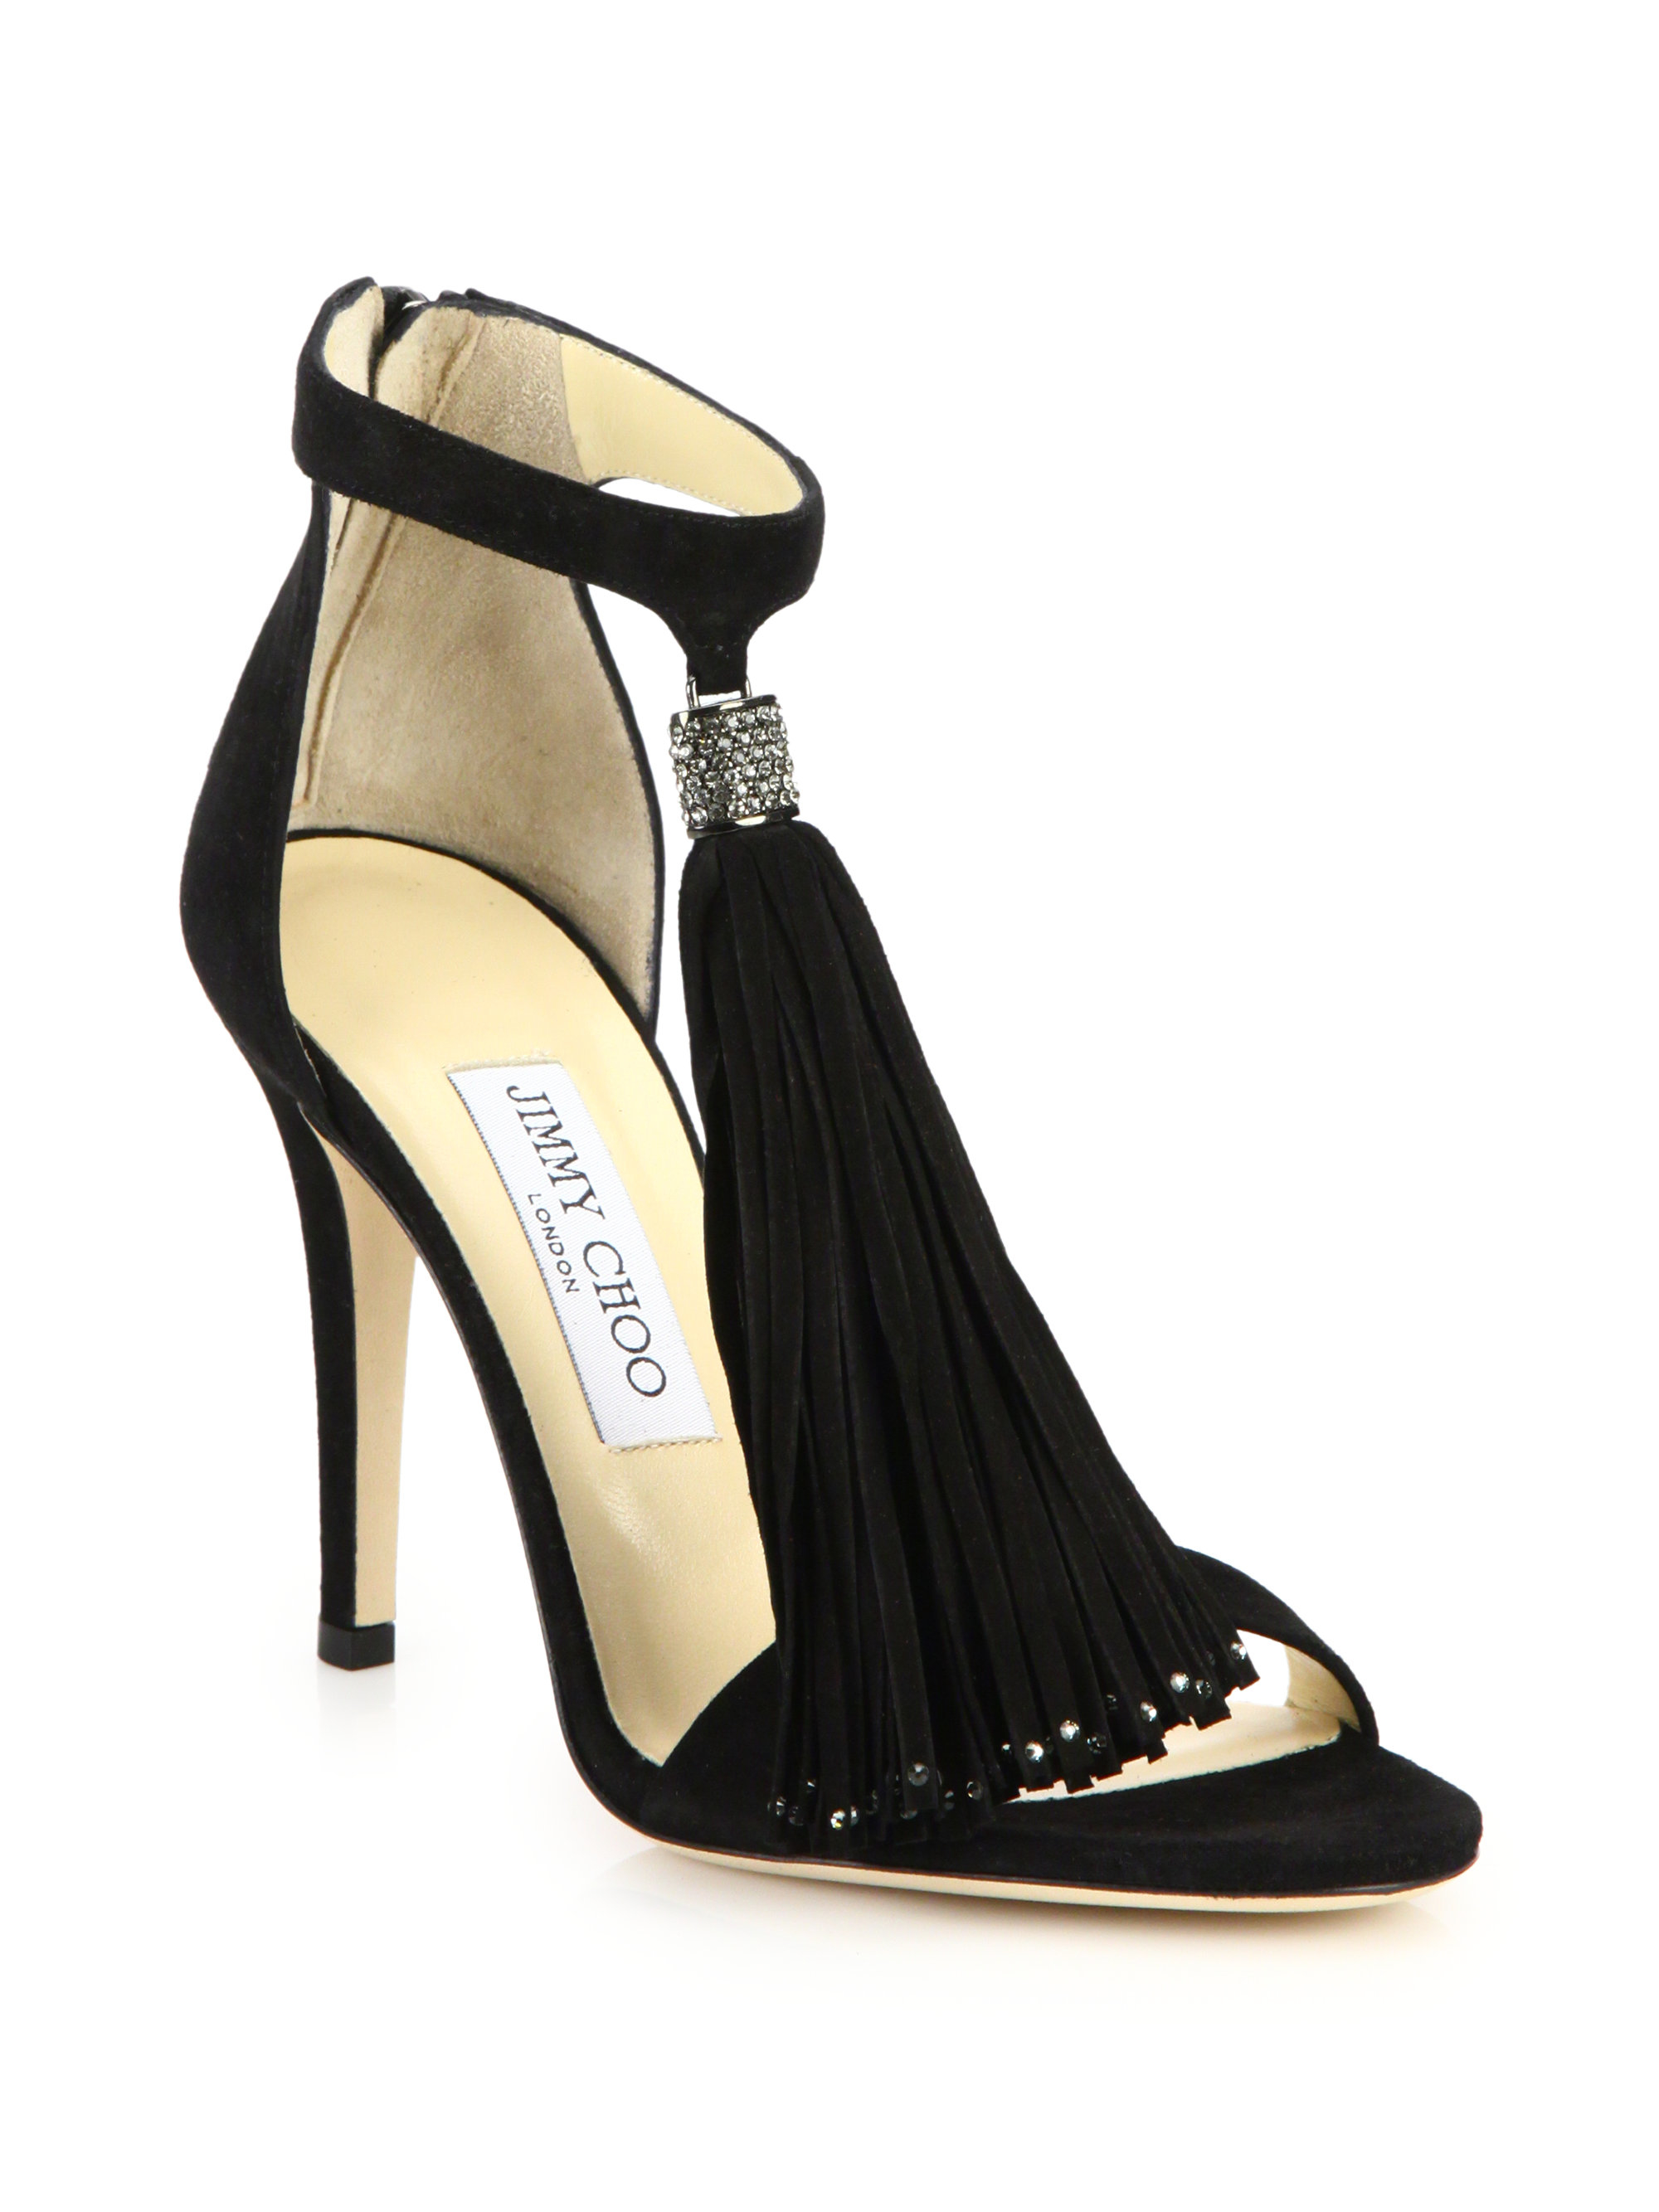 Viola 100 pumps - Black Jimmy Choo London Exclusive Looking For Outlet Wide Range Of Cheap Buy 63wsQPRrf